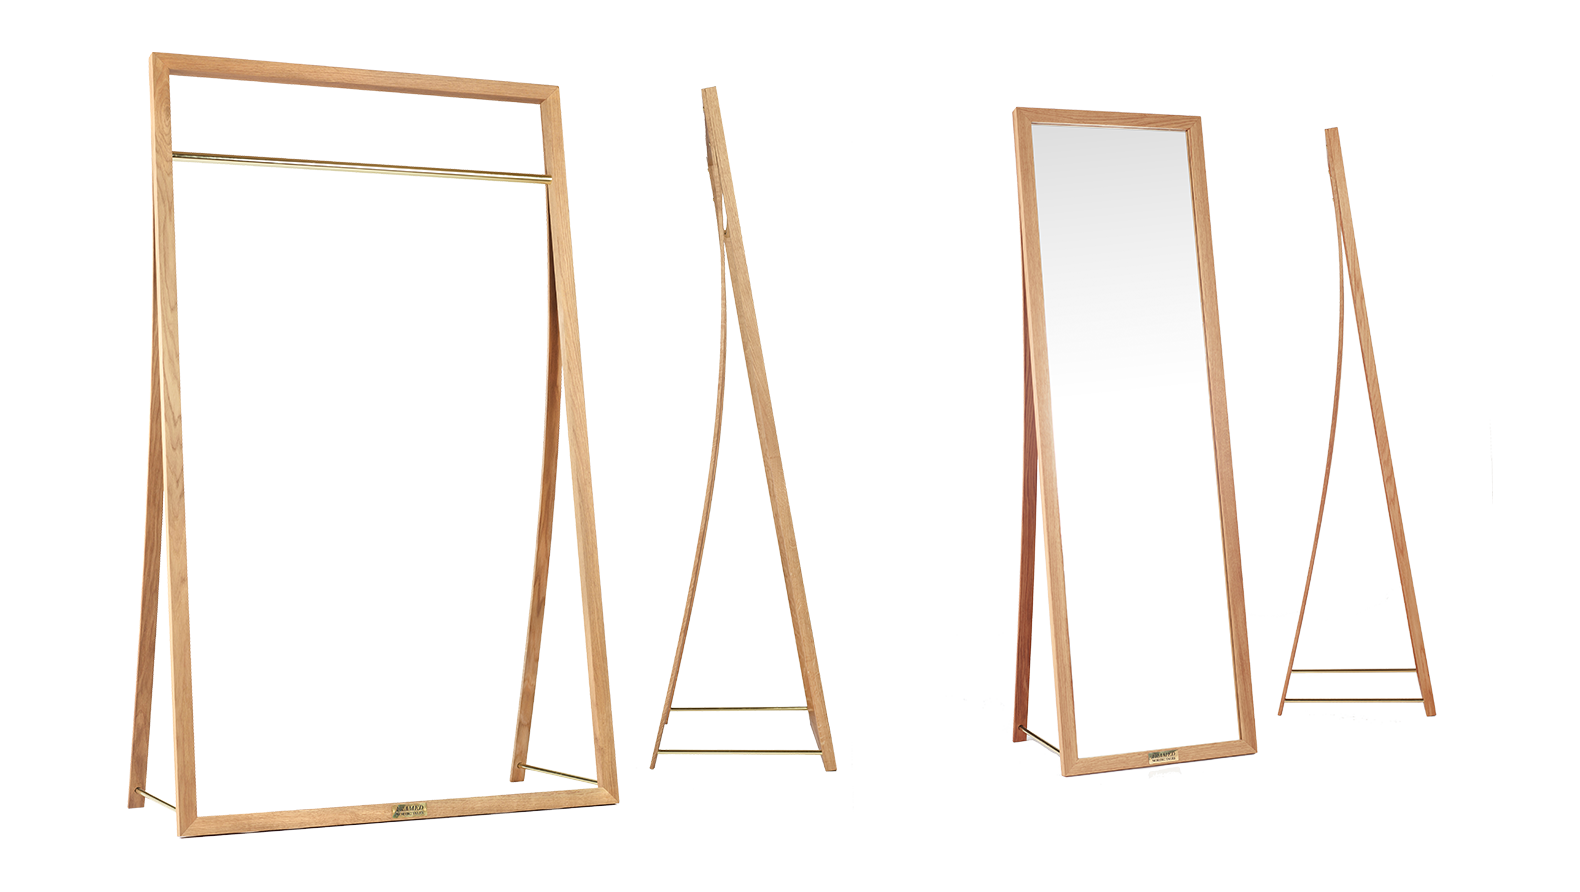 Danish Design Furniture: Framed Clothing rack, originally designed for renowned Danish designer Stine Goya